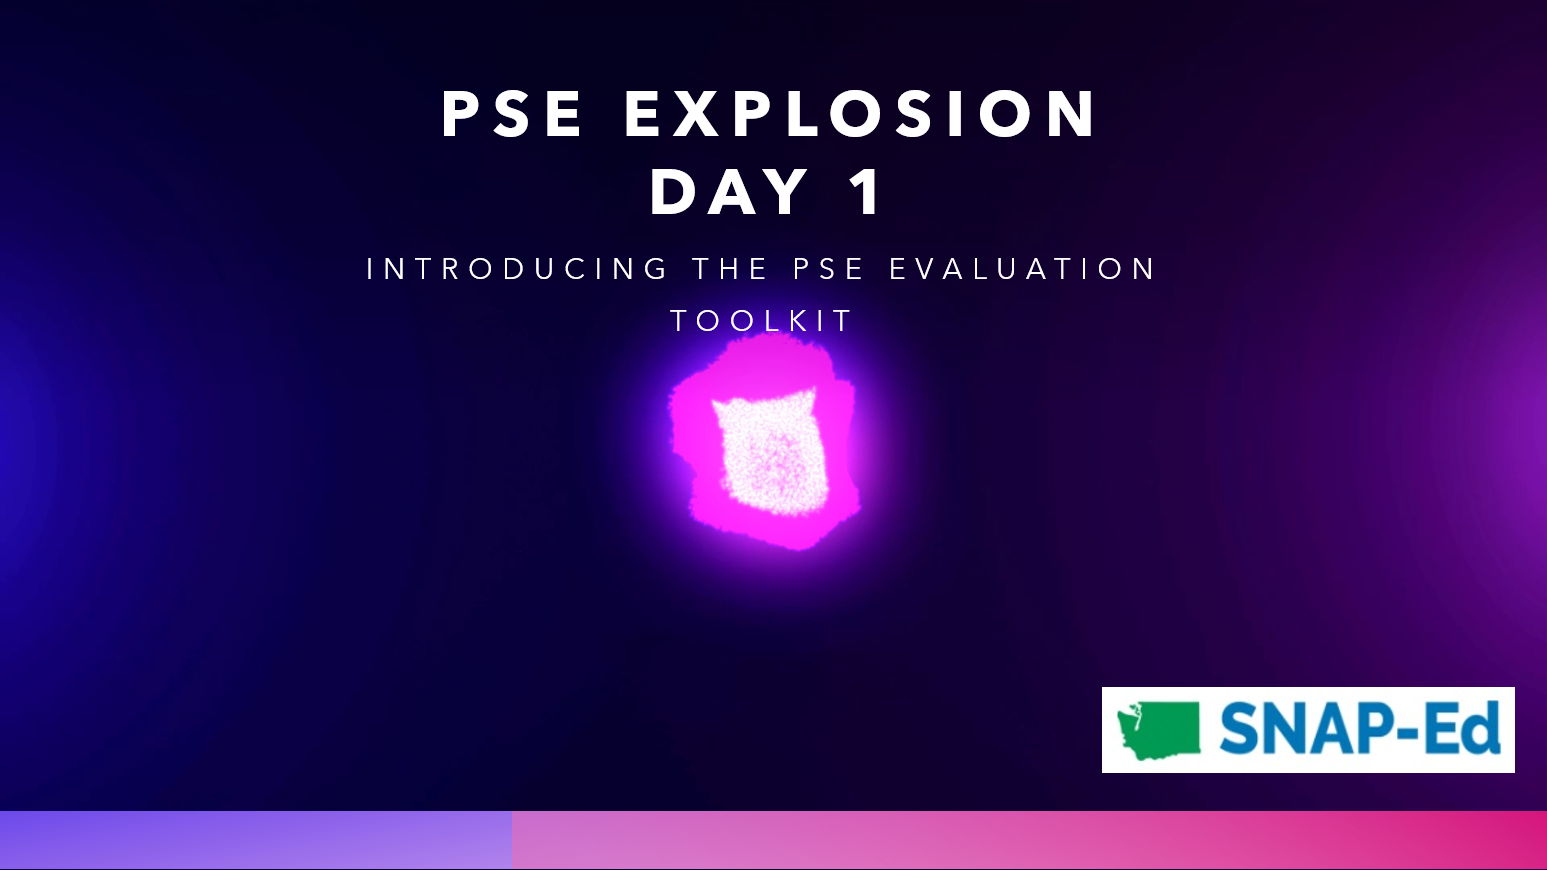 PowerPoint Slide that reads: PSE Explosion Day 1 Introducing the PSE Evaluation Toolkit